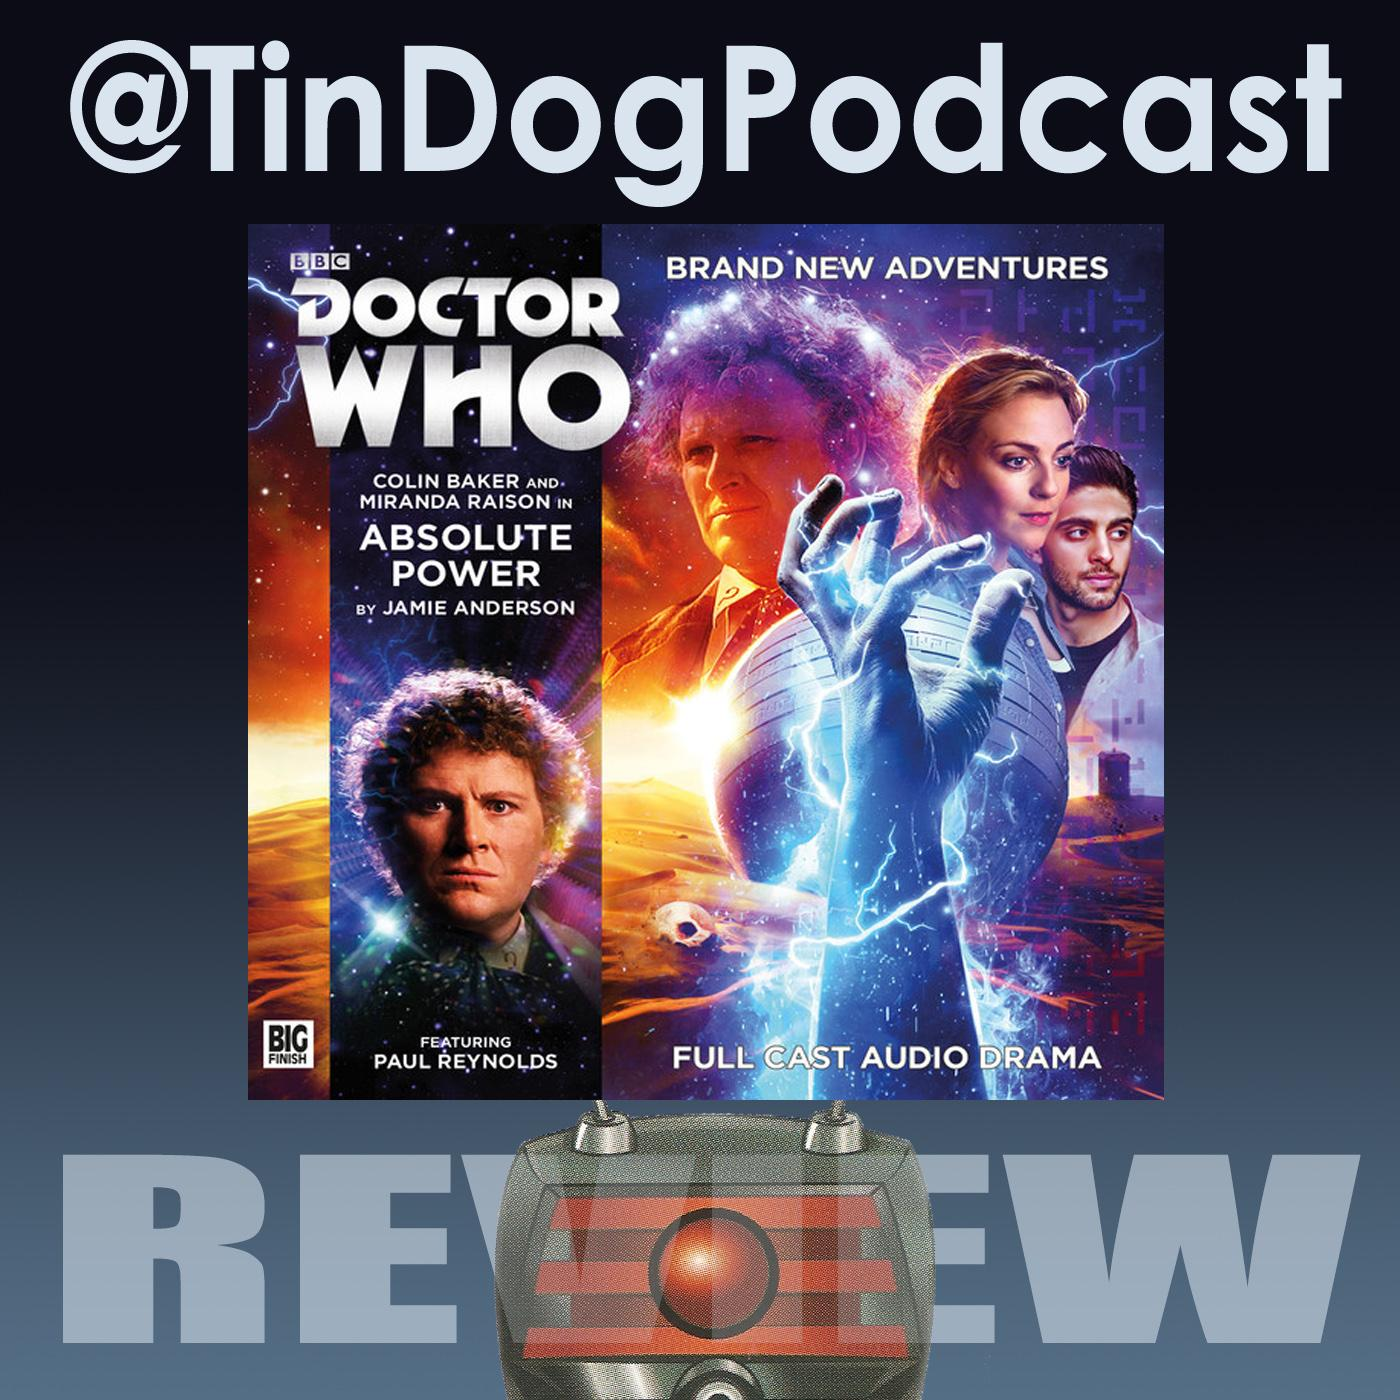 TDP 635: Doctor Who - Main Range 219 Absolute Power